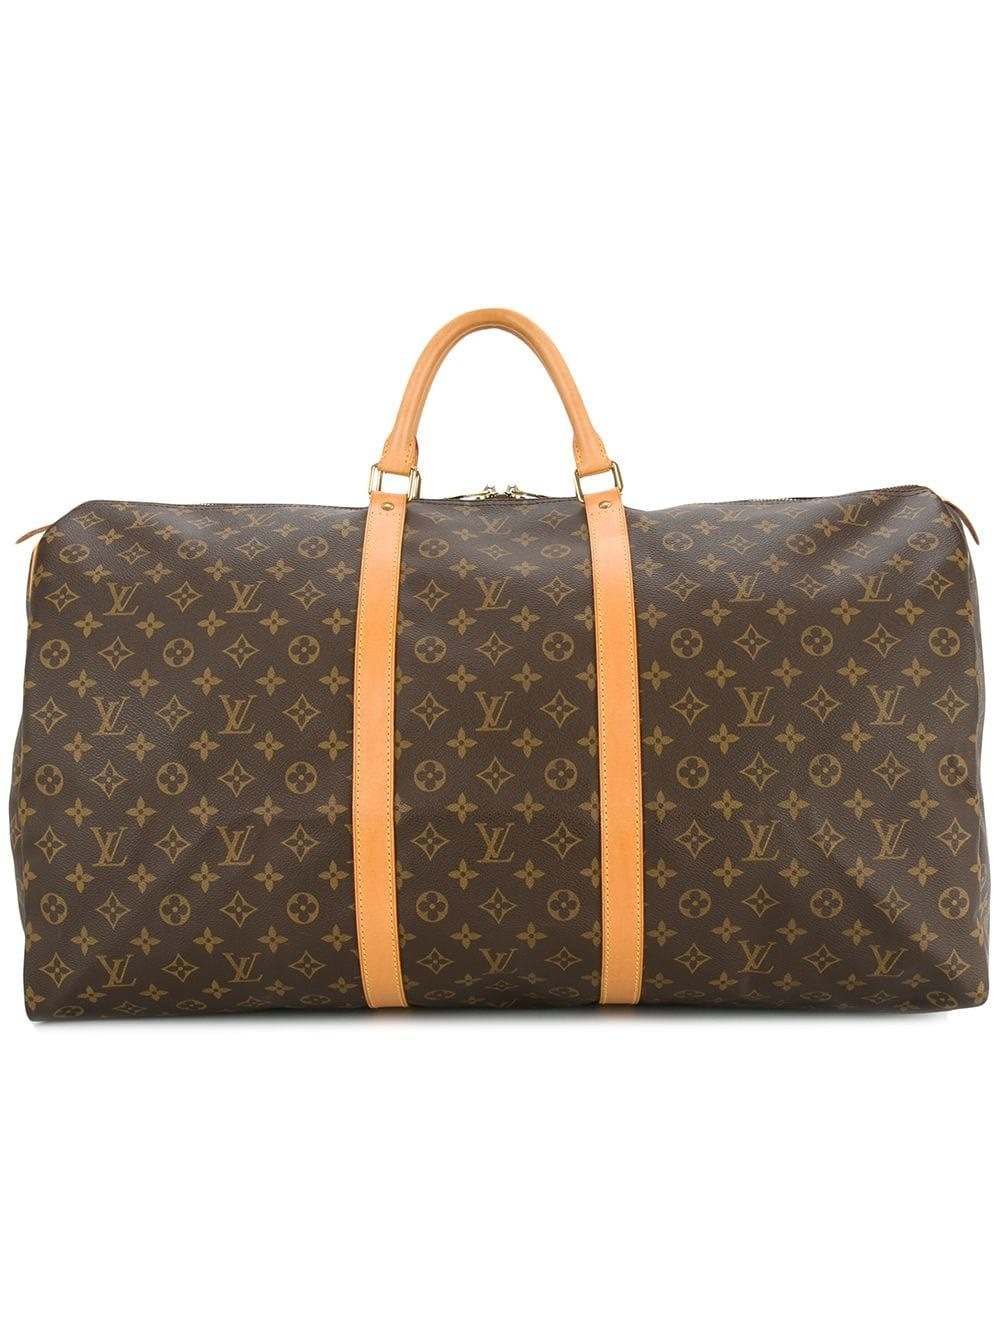 Lv Logo Pre Owned Keepall 60 Travel Bag